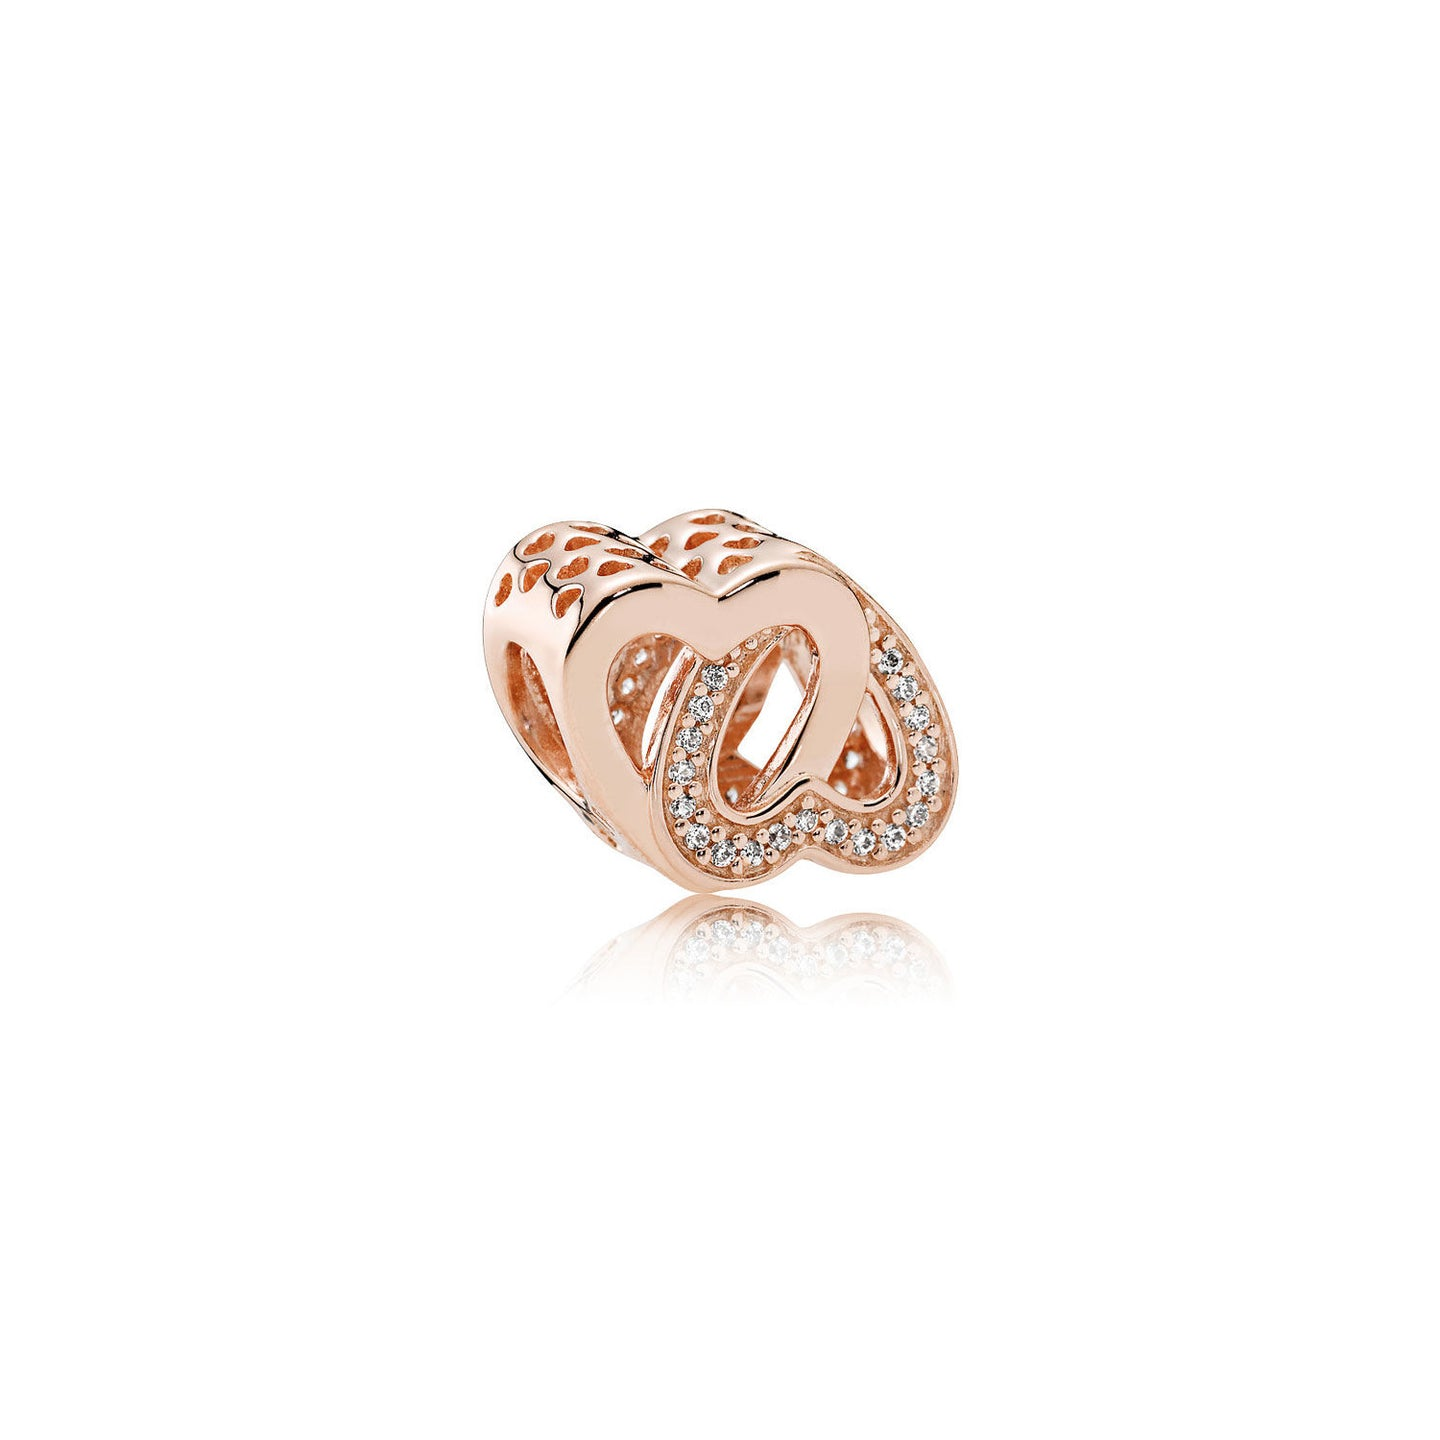 Entwined Love Charm - Rose Gold, Cubic Zirconia Gemstones - ARJWVC1046RG